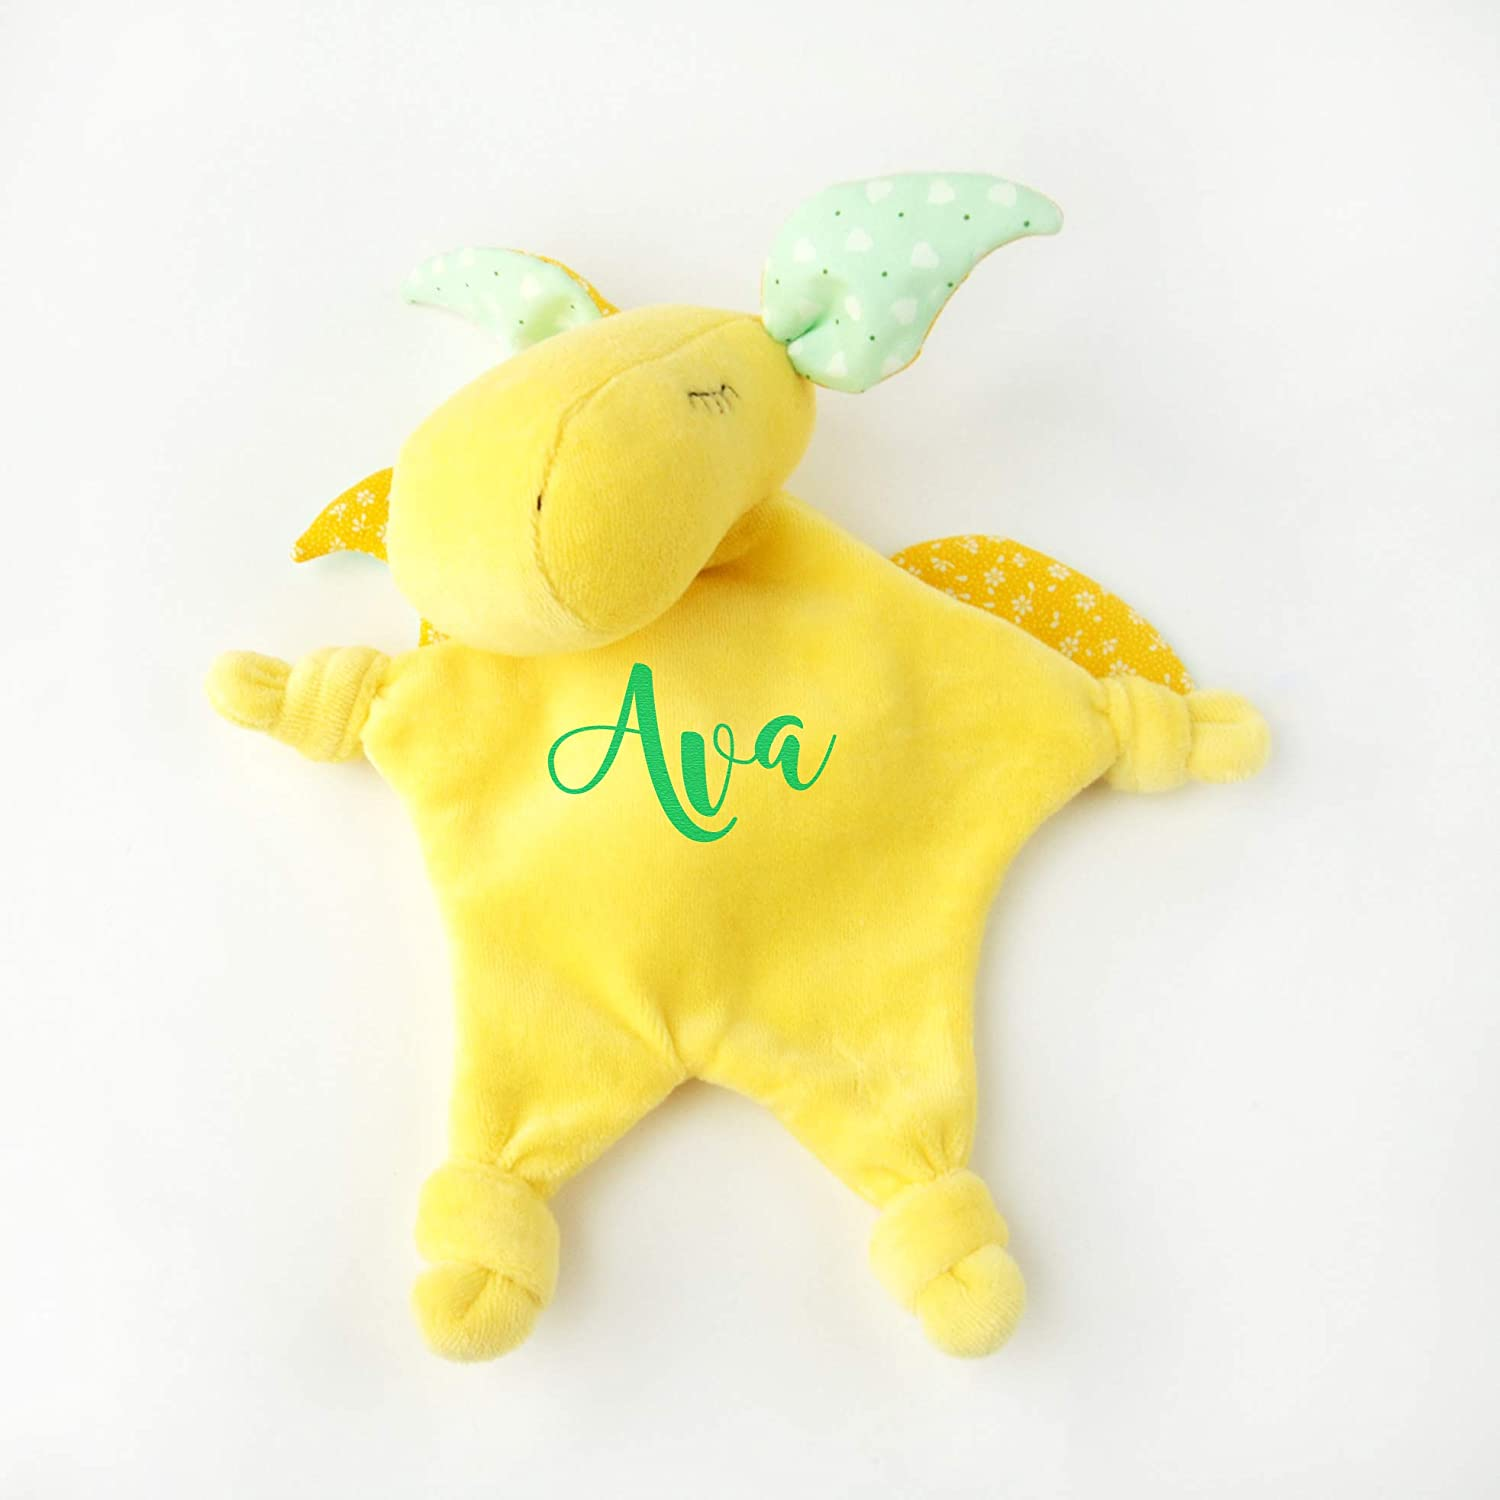 Personalized Baby Stuffed Animals, Amazon Com Personalized Custom Embroidered Baby Comforter Toy Baby Boy Gift Dragon Handmade